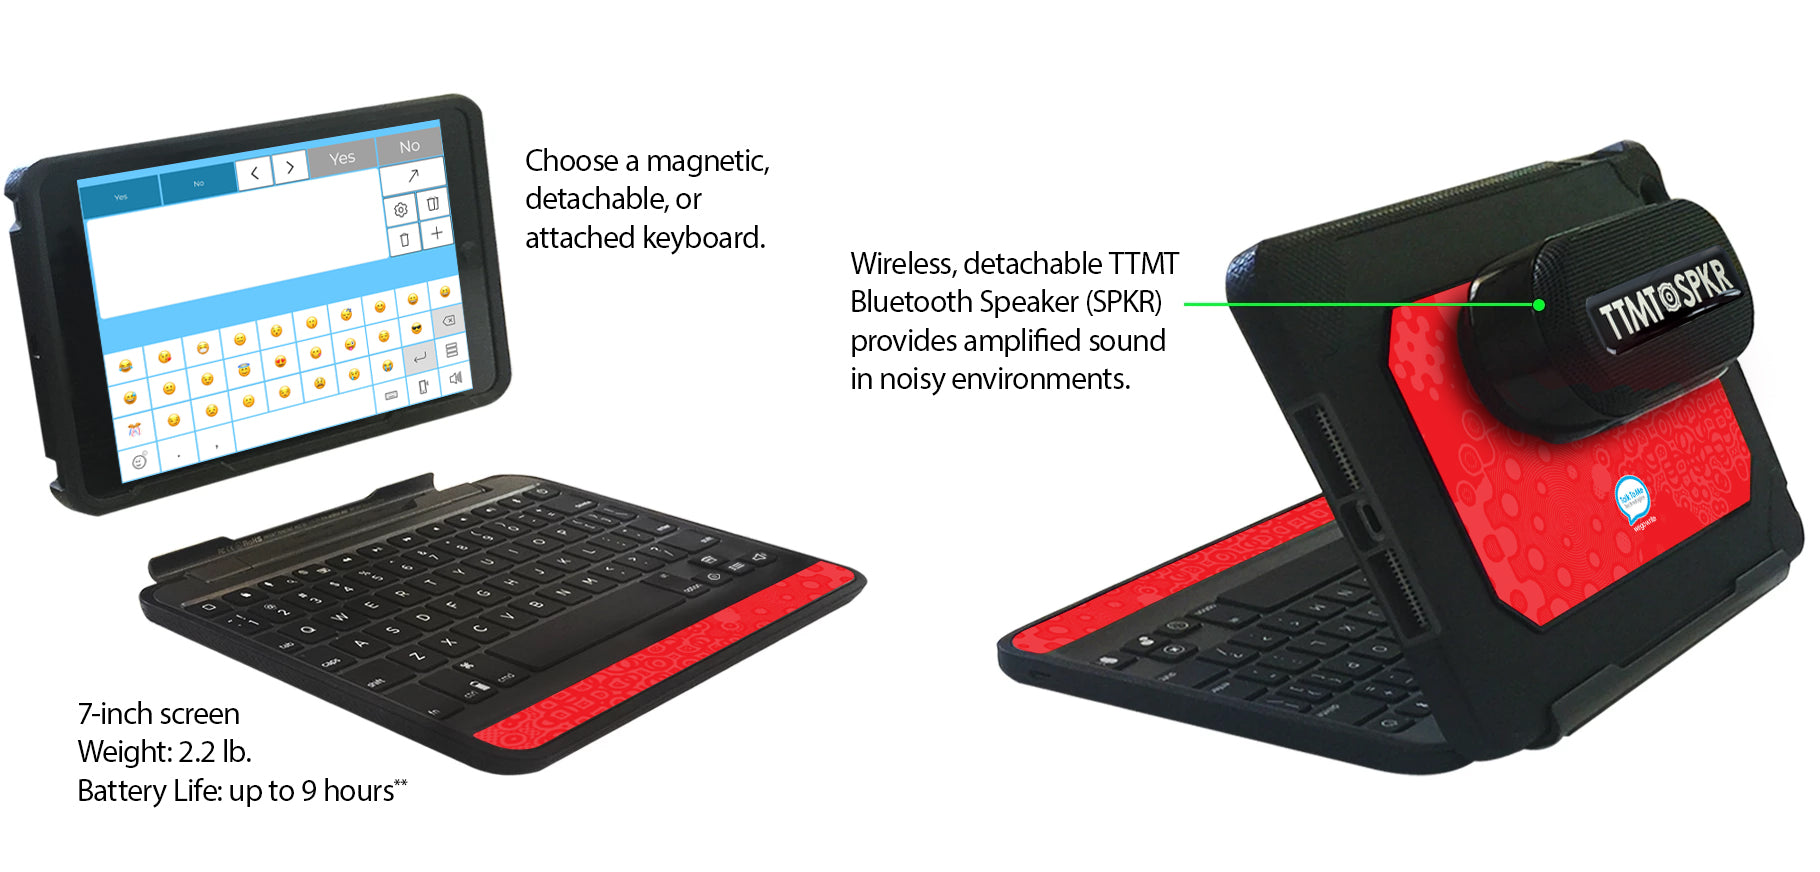 Choose a magnetic, detachable, or attached keyboard. Wireless, detachable TTMT speaker (SPKR) provides amplified sound in noisy environments. 7 inch screen. Weight 2.2 pounds. Battery life up to 9 hours.